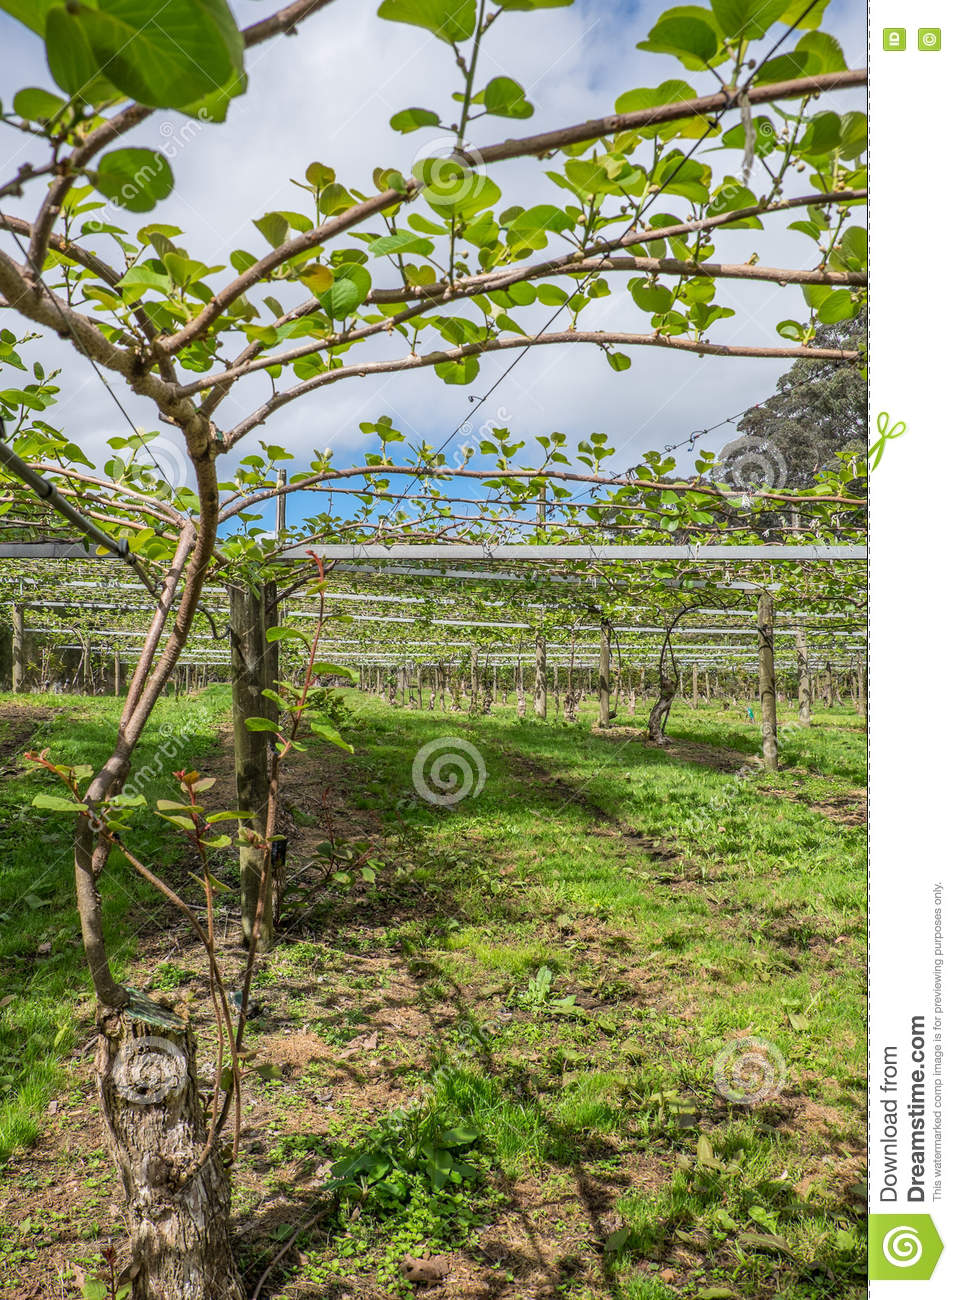 Images Of Kiwi Fruit Vines